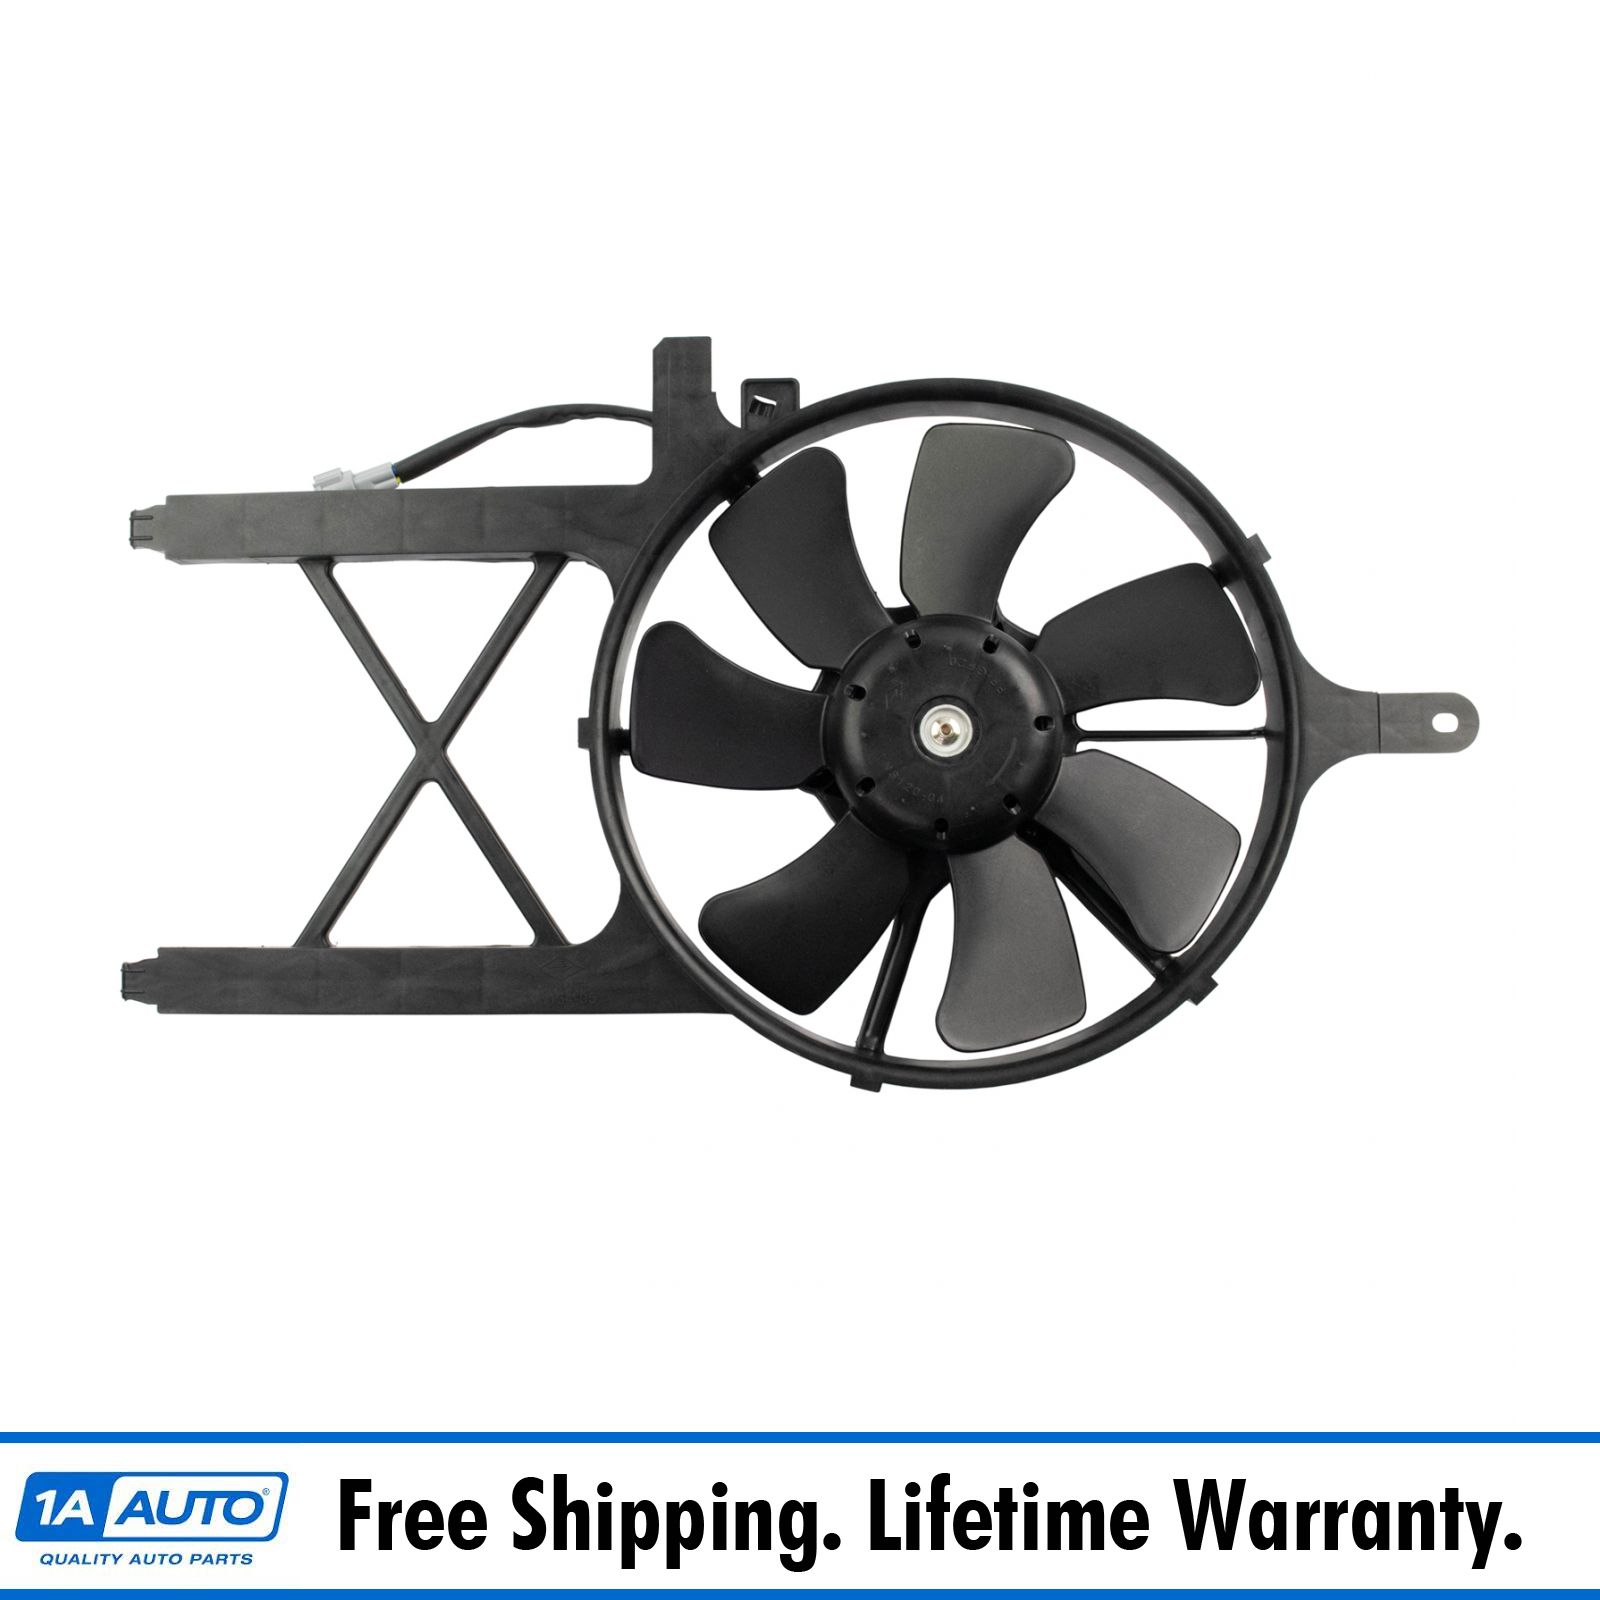 NI3120102 OE Style AC Condenser Cooling Fan Assembly Replacement for Frontier Xterra 2.5L 4.0L 05-18